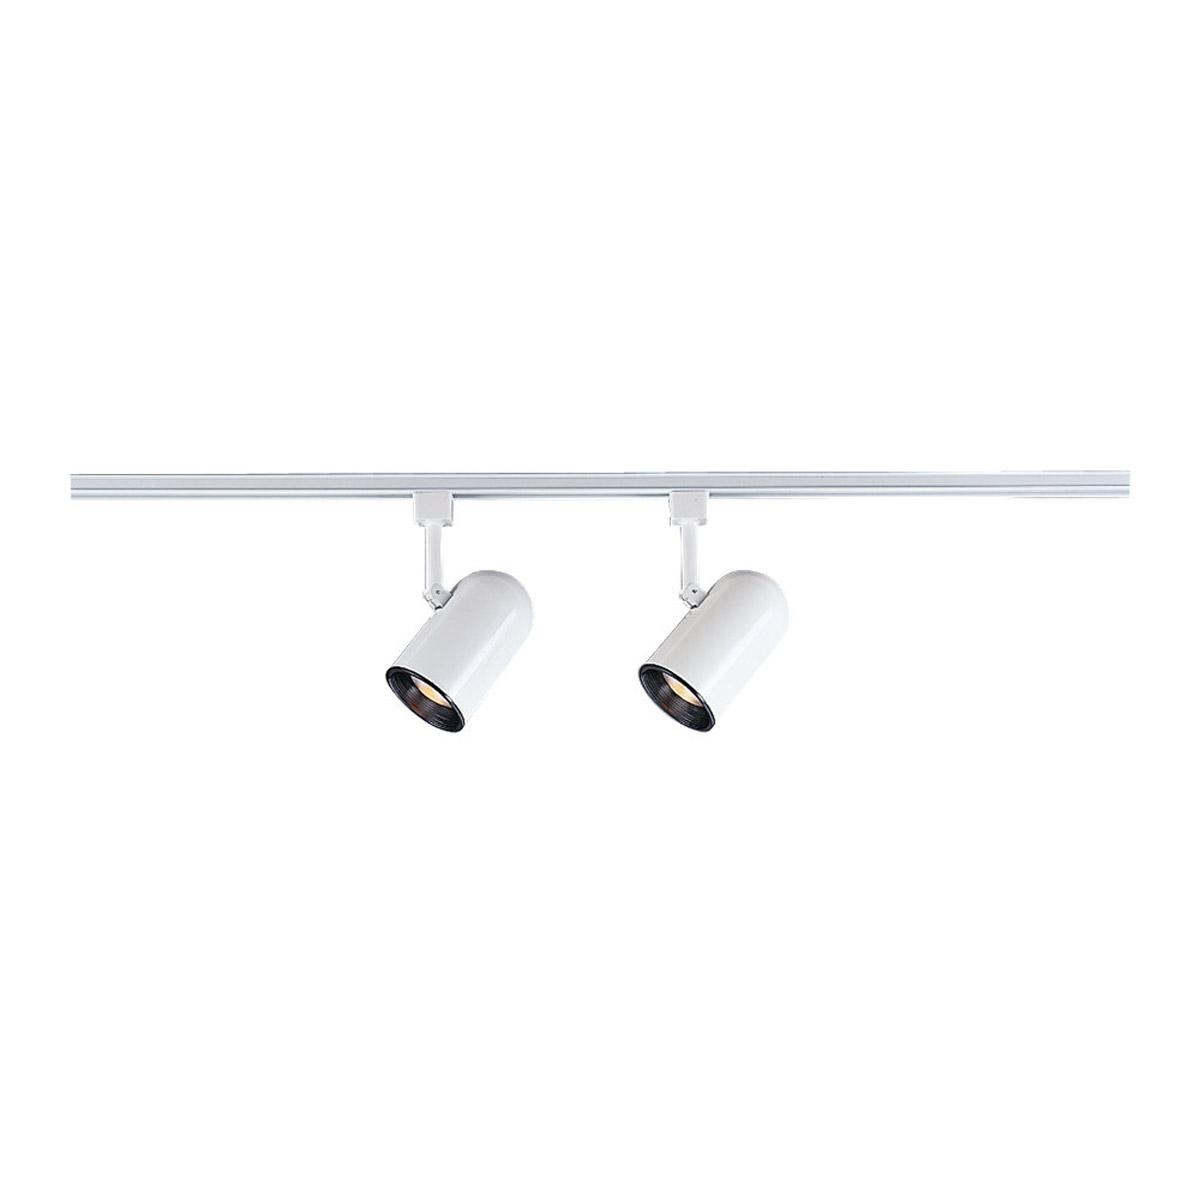 Sea Gull Lighting Ambiance Lx 2 Light Track Lighting Kit in White 2670-15